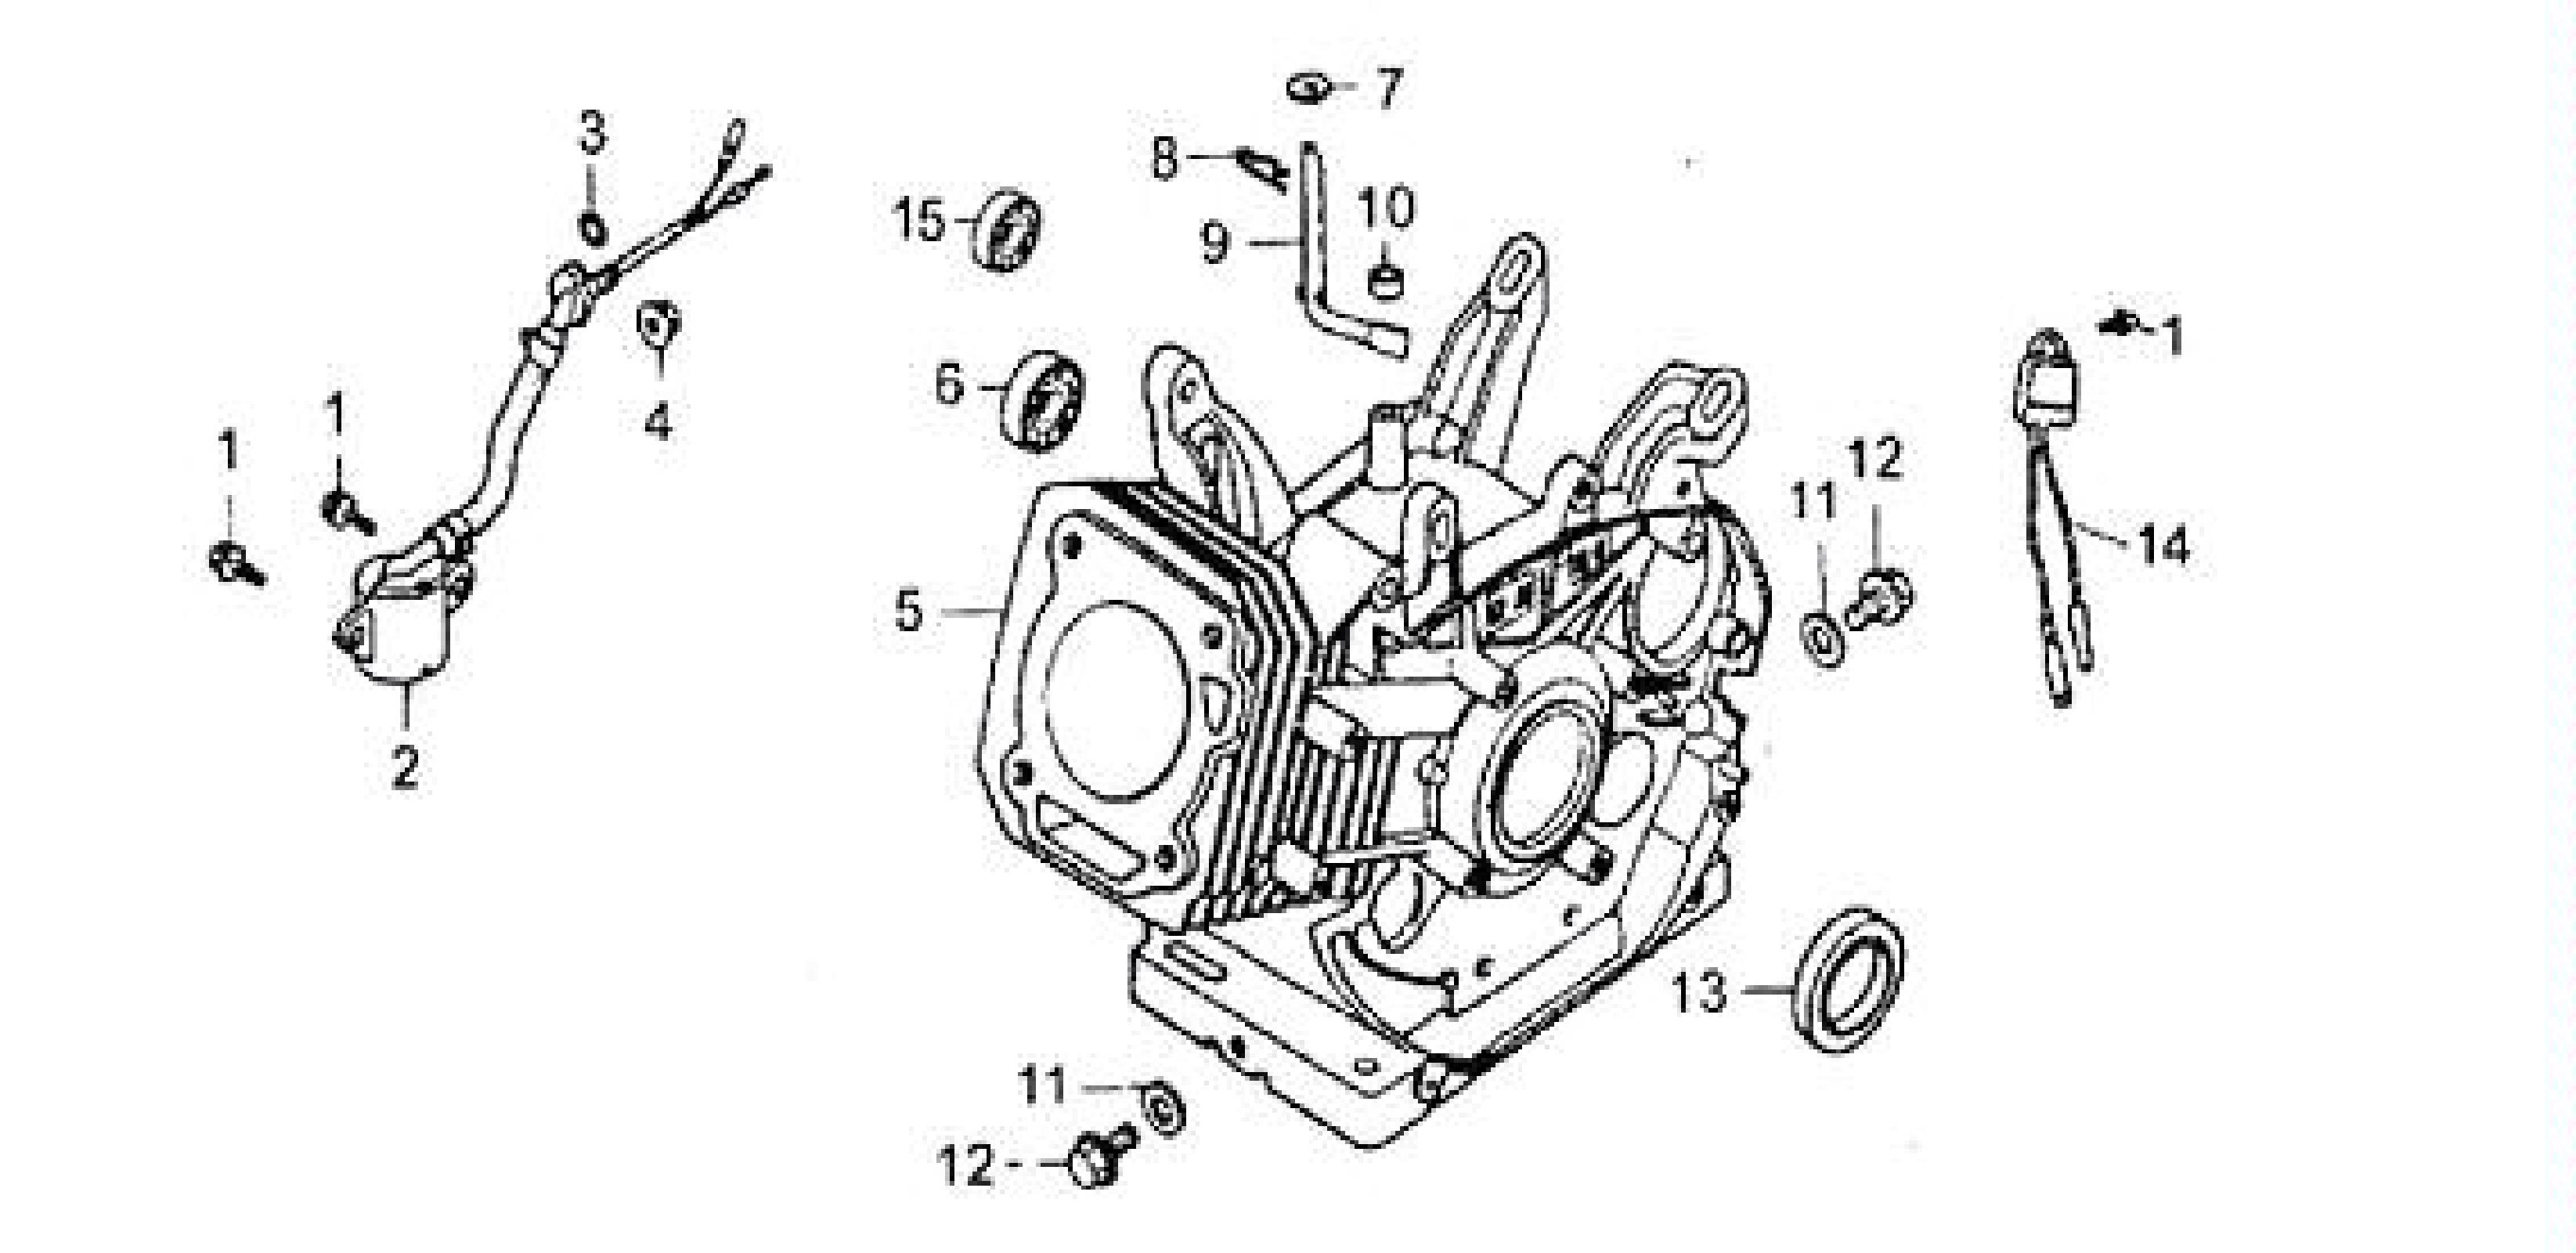 Cylinder Barrel on Honda Gx390 Parts Diagram